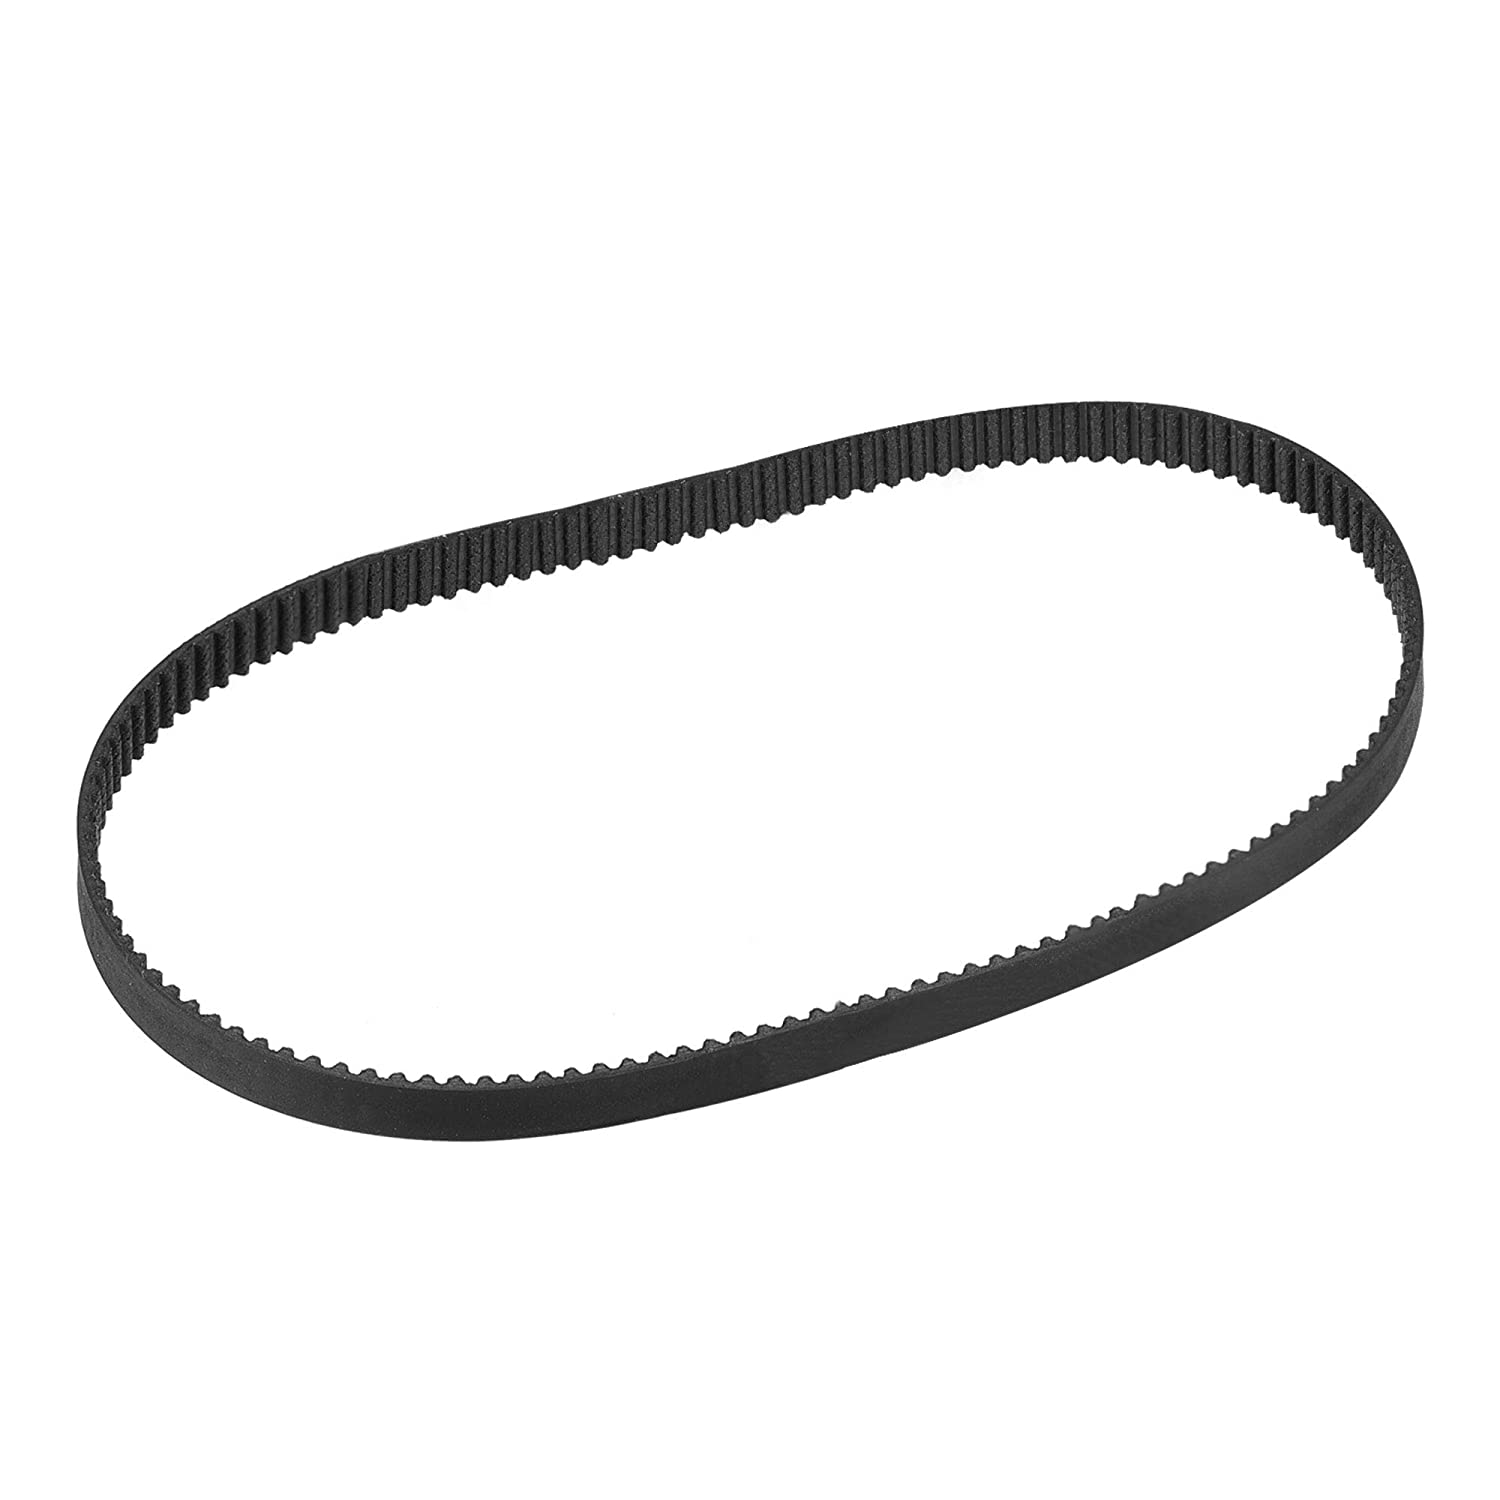 uxcell GT2 Timing Belt 348mm Circumference 6mm Width Closed Fit Synchronous Pulley Wheel for 3D Printer